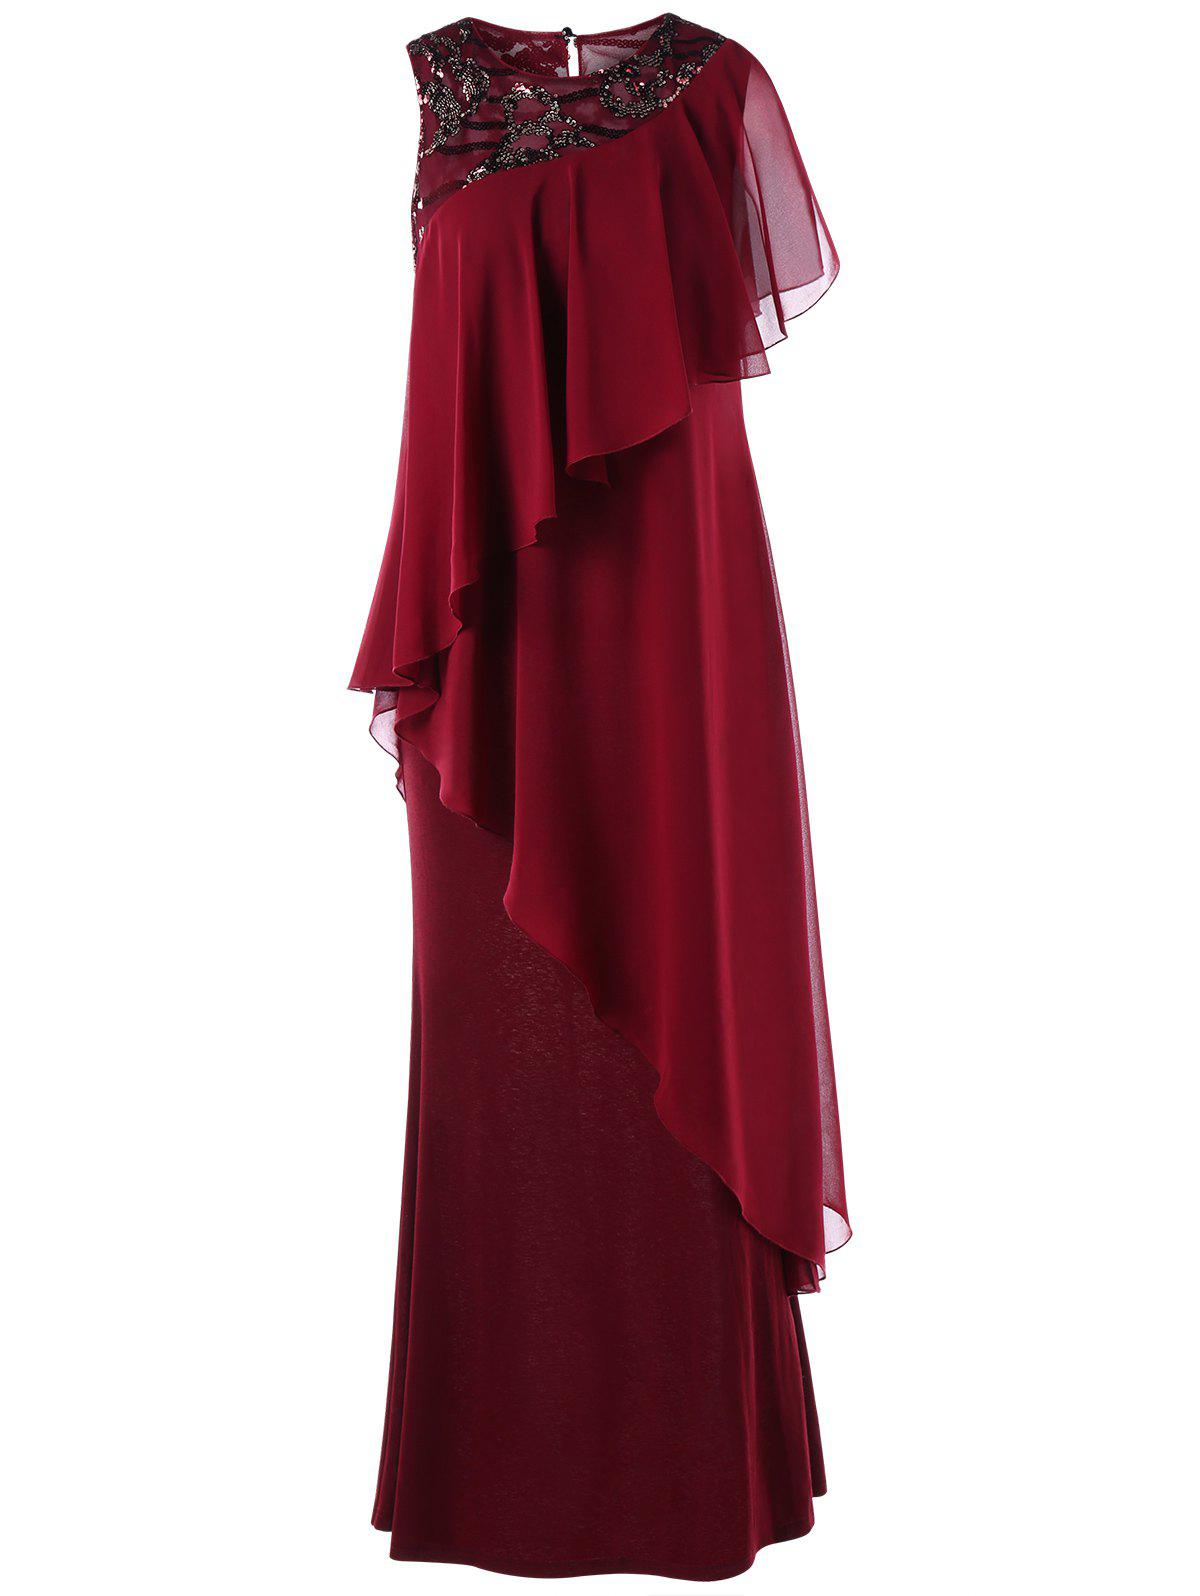 New Sleeveless Tiered Formal Maxi Dress